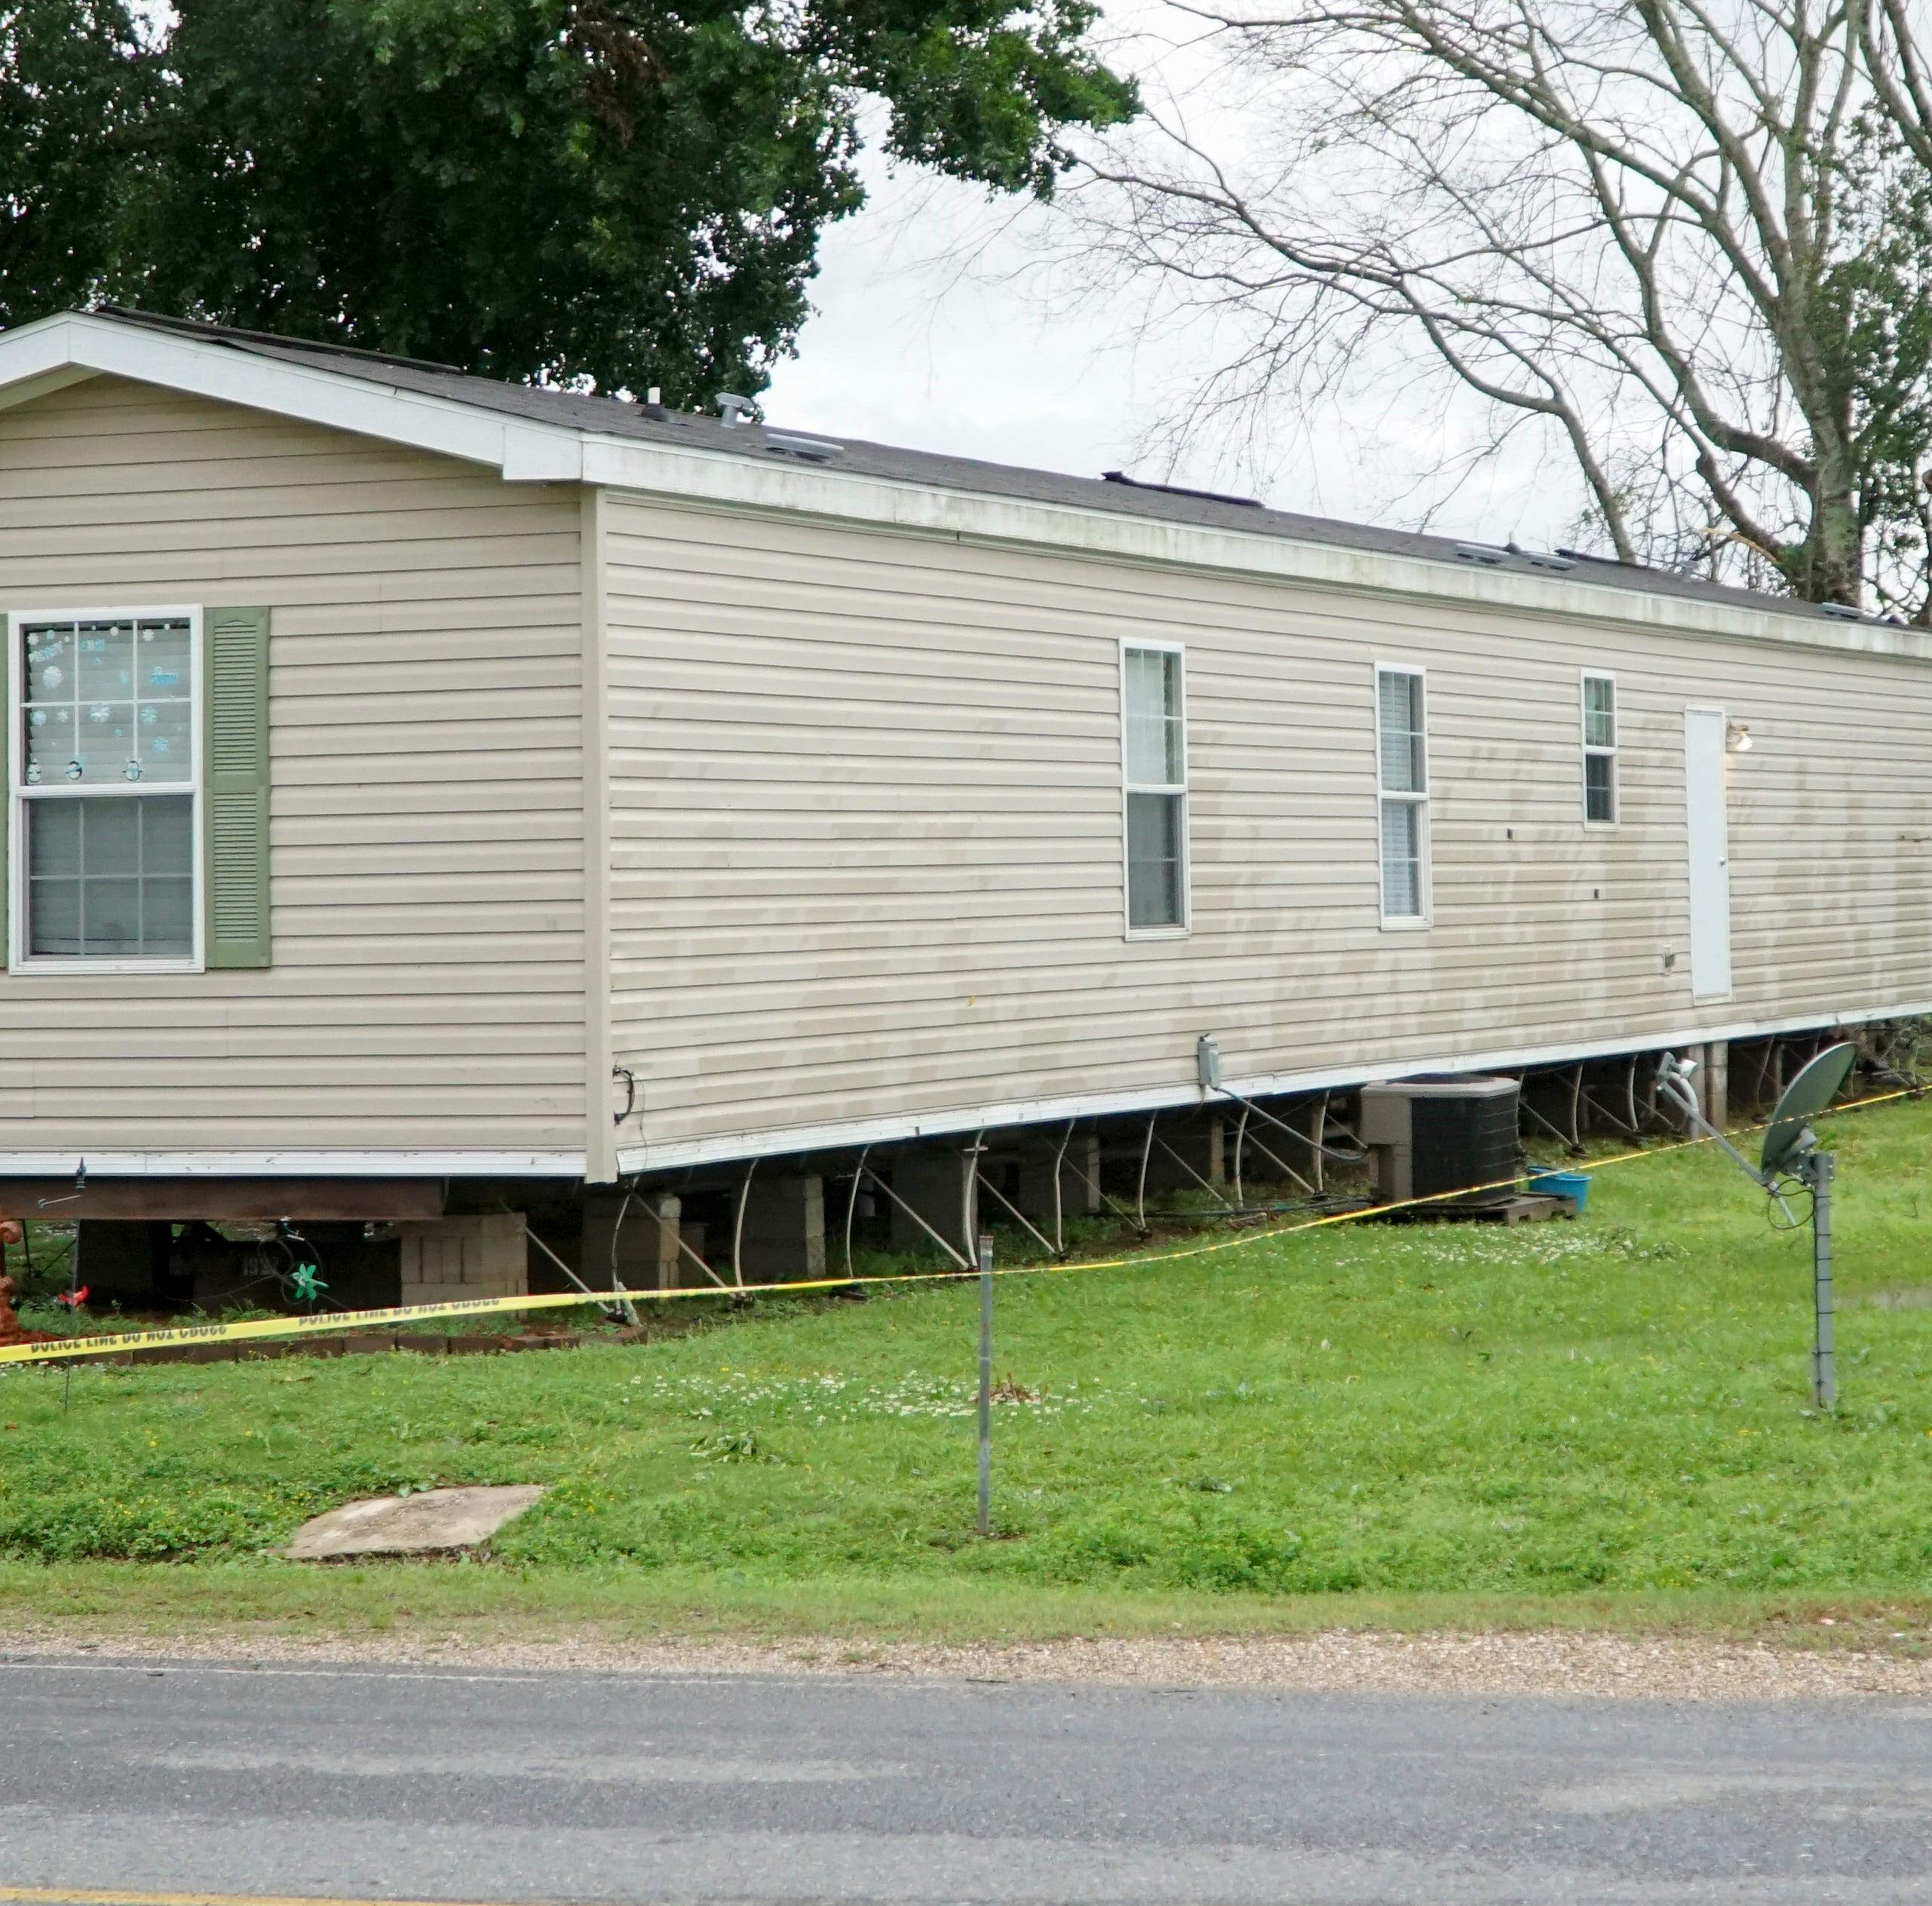 Man killed in break-in at mobile home in Grand Coteau